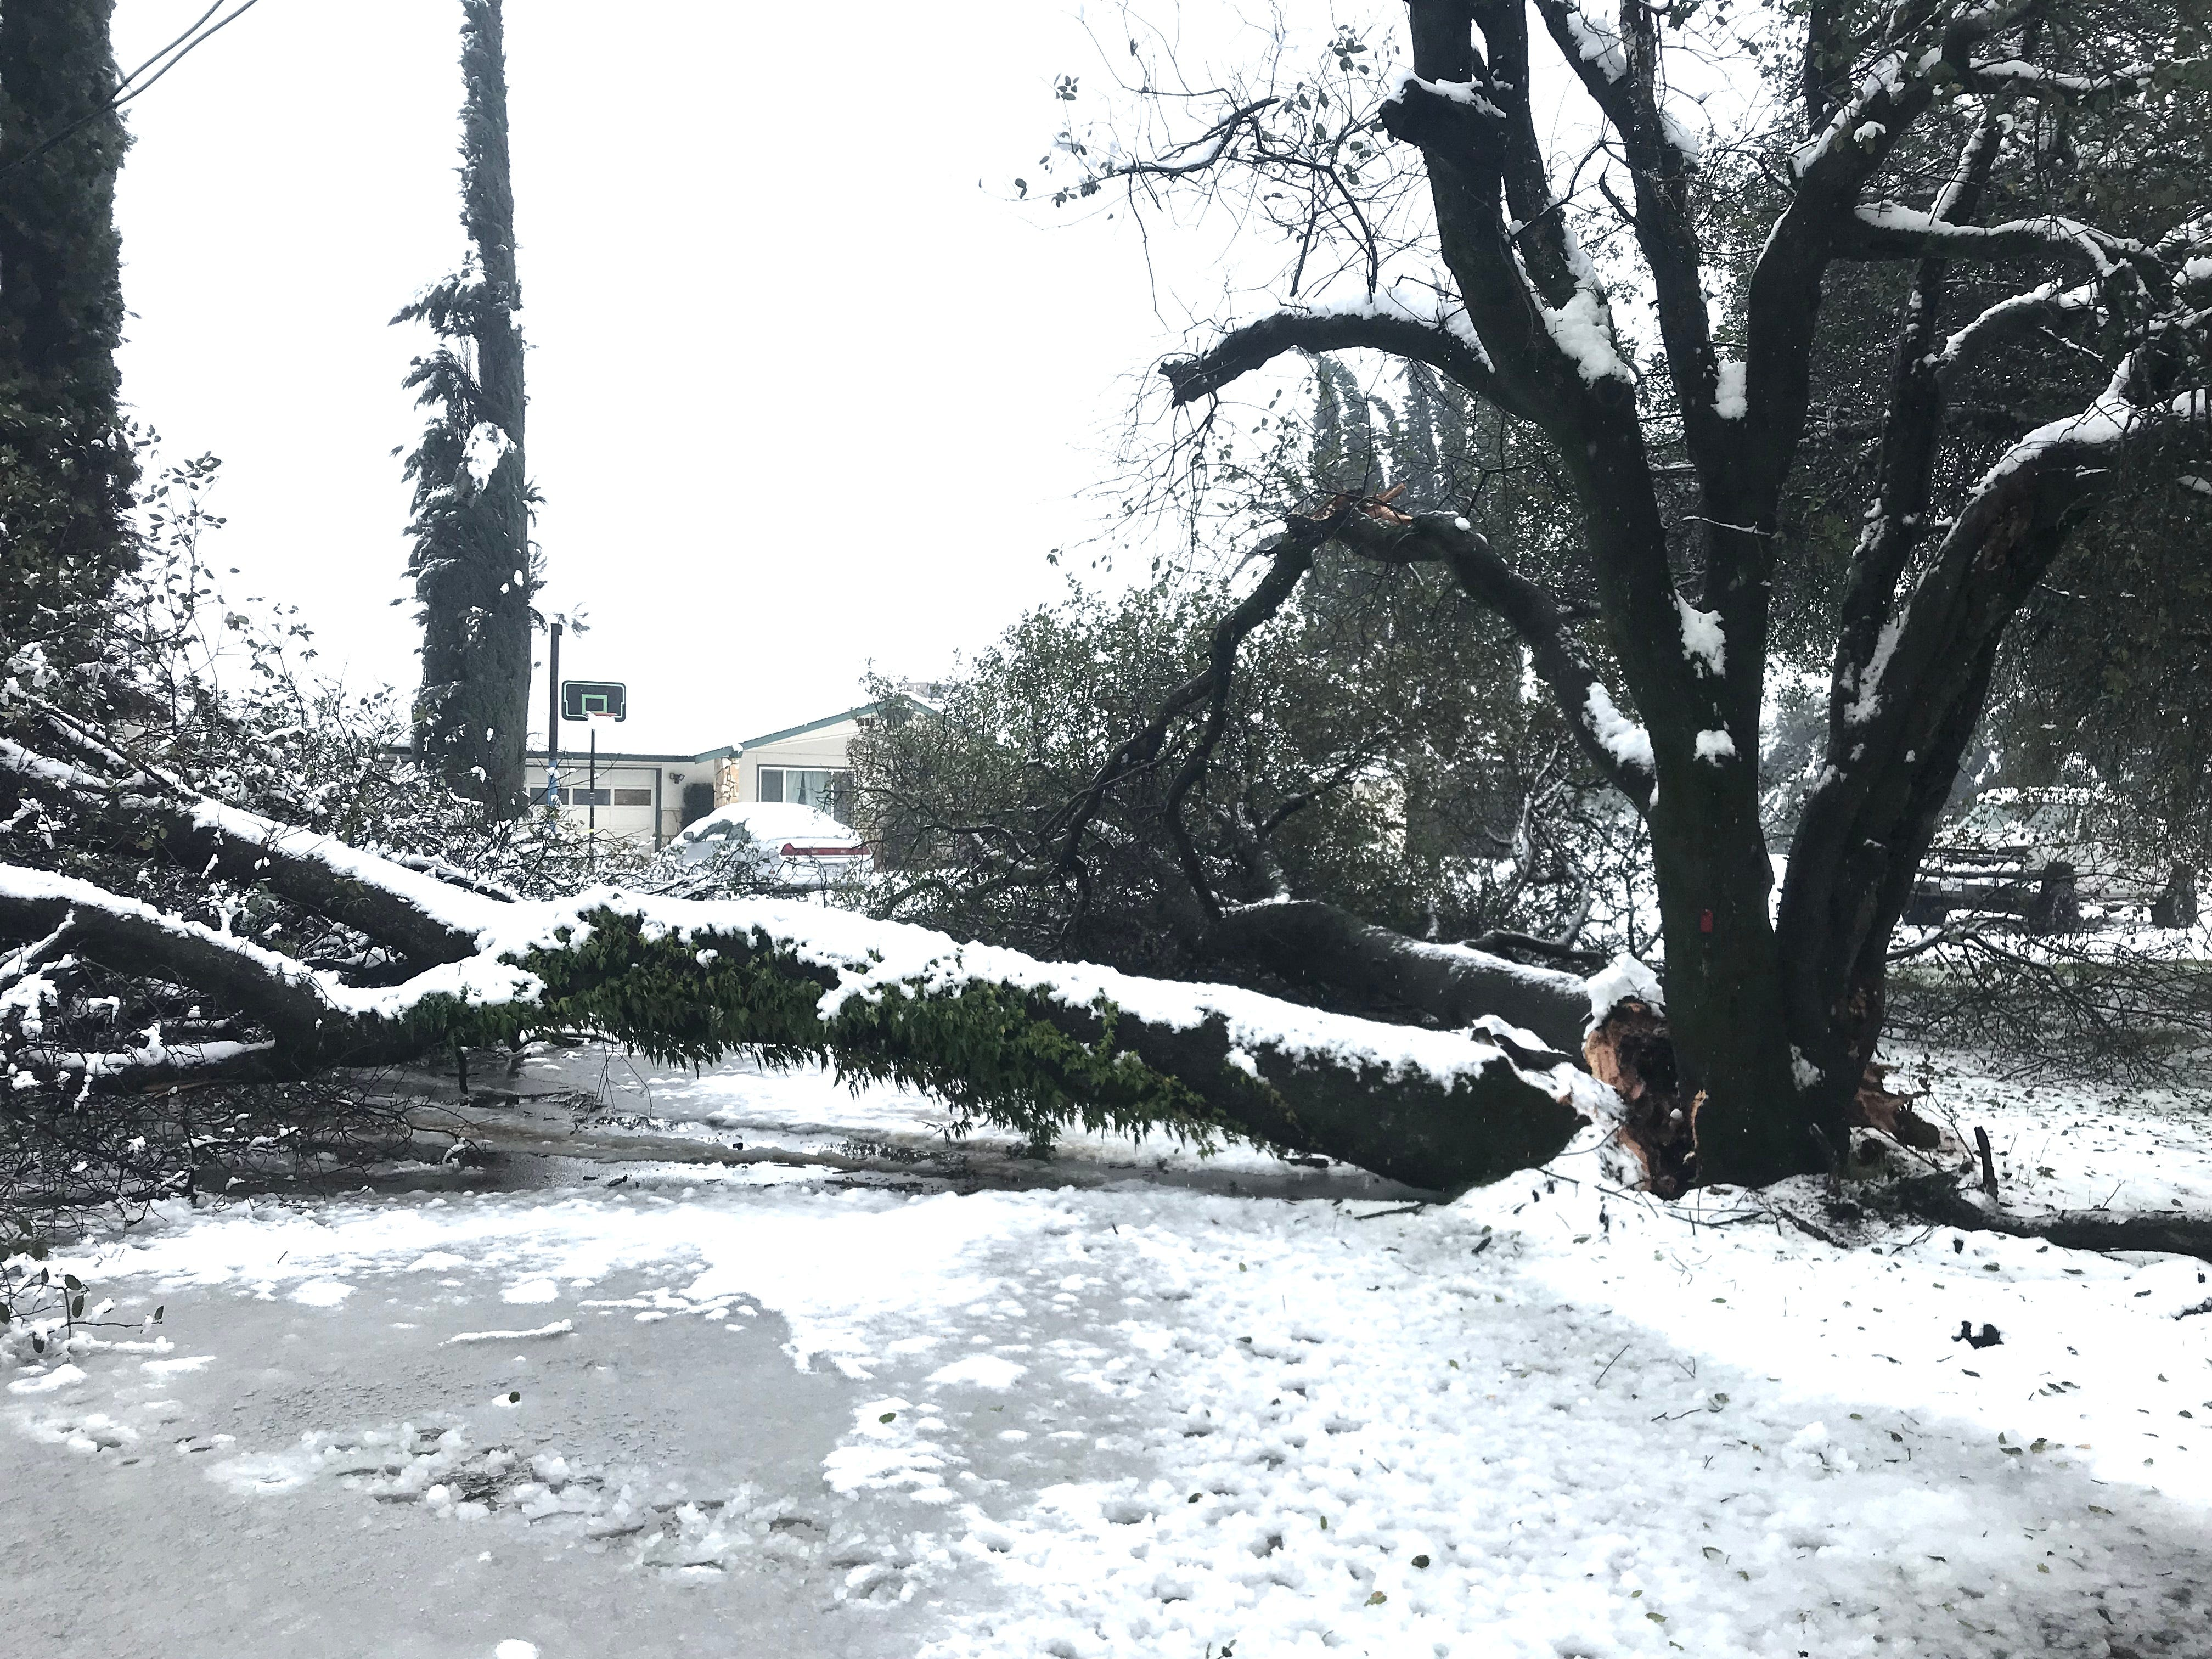 Trees were broken all over Redding as 10 to 13 inches of snow fell in Redding overnight Tuesday.